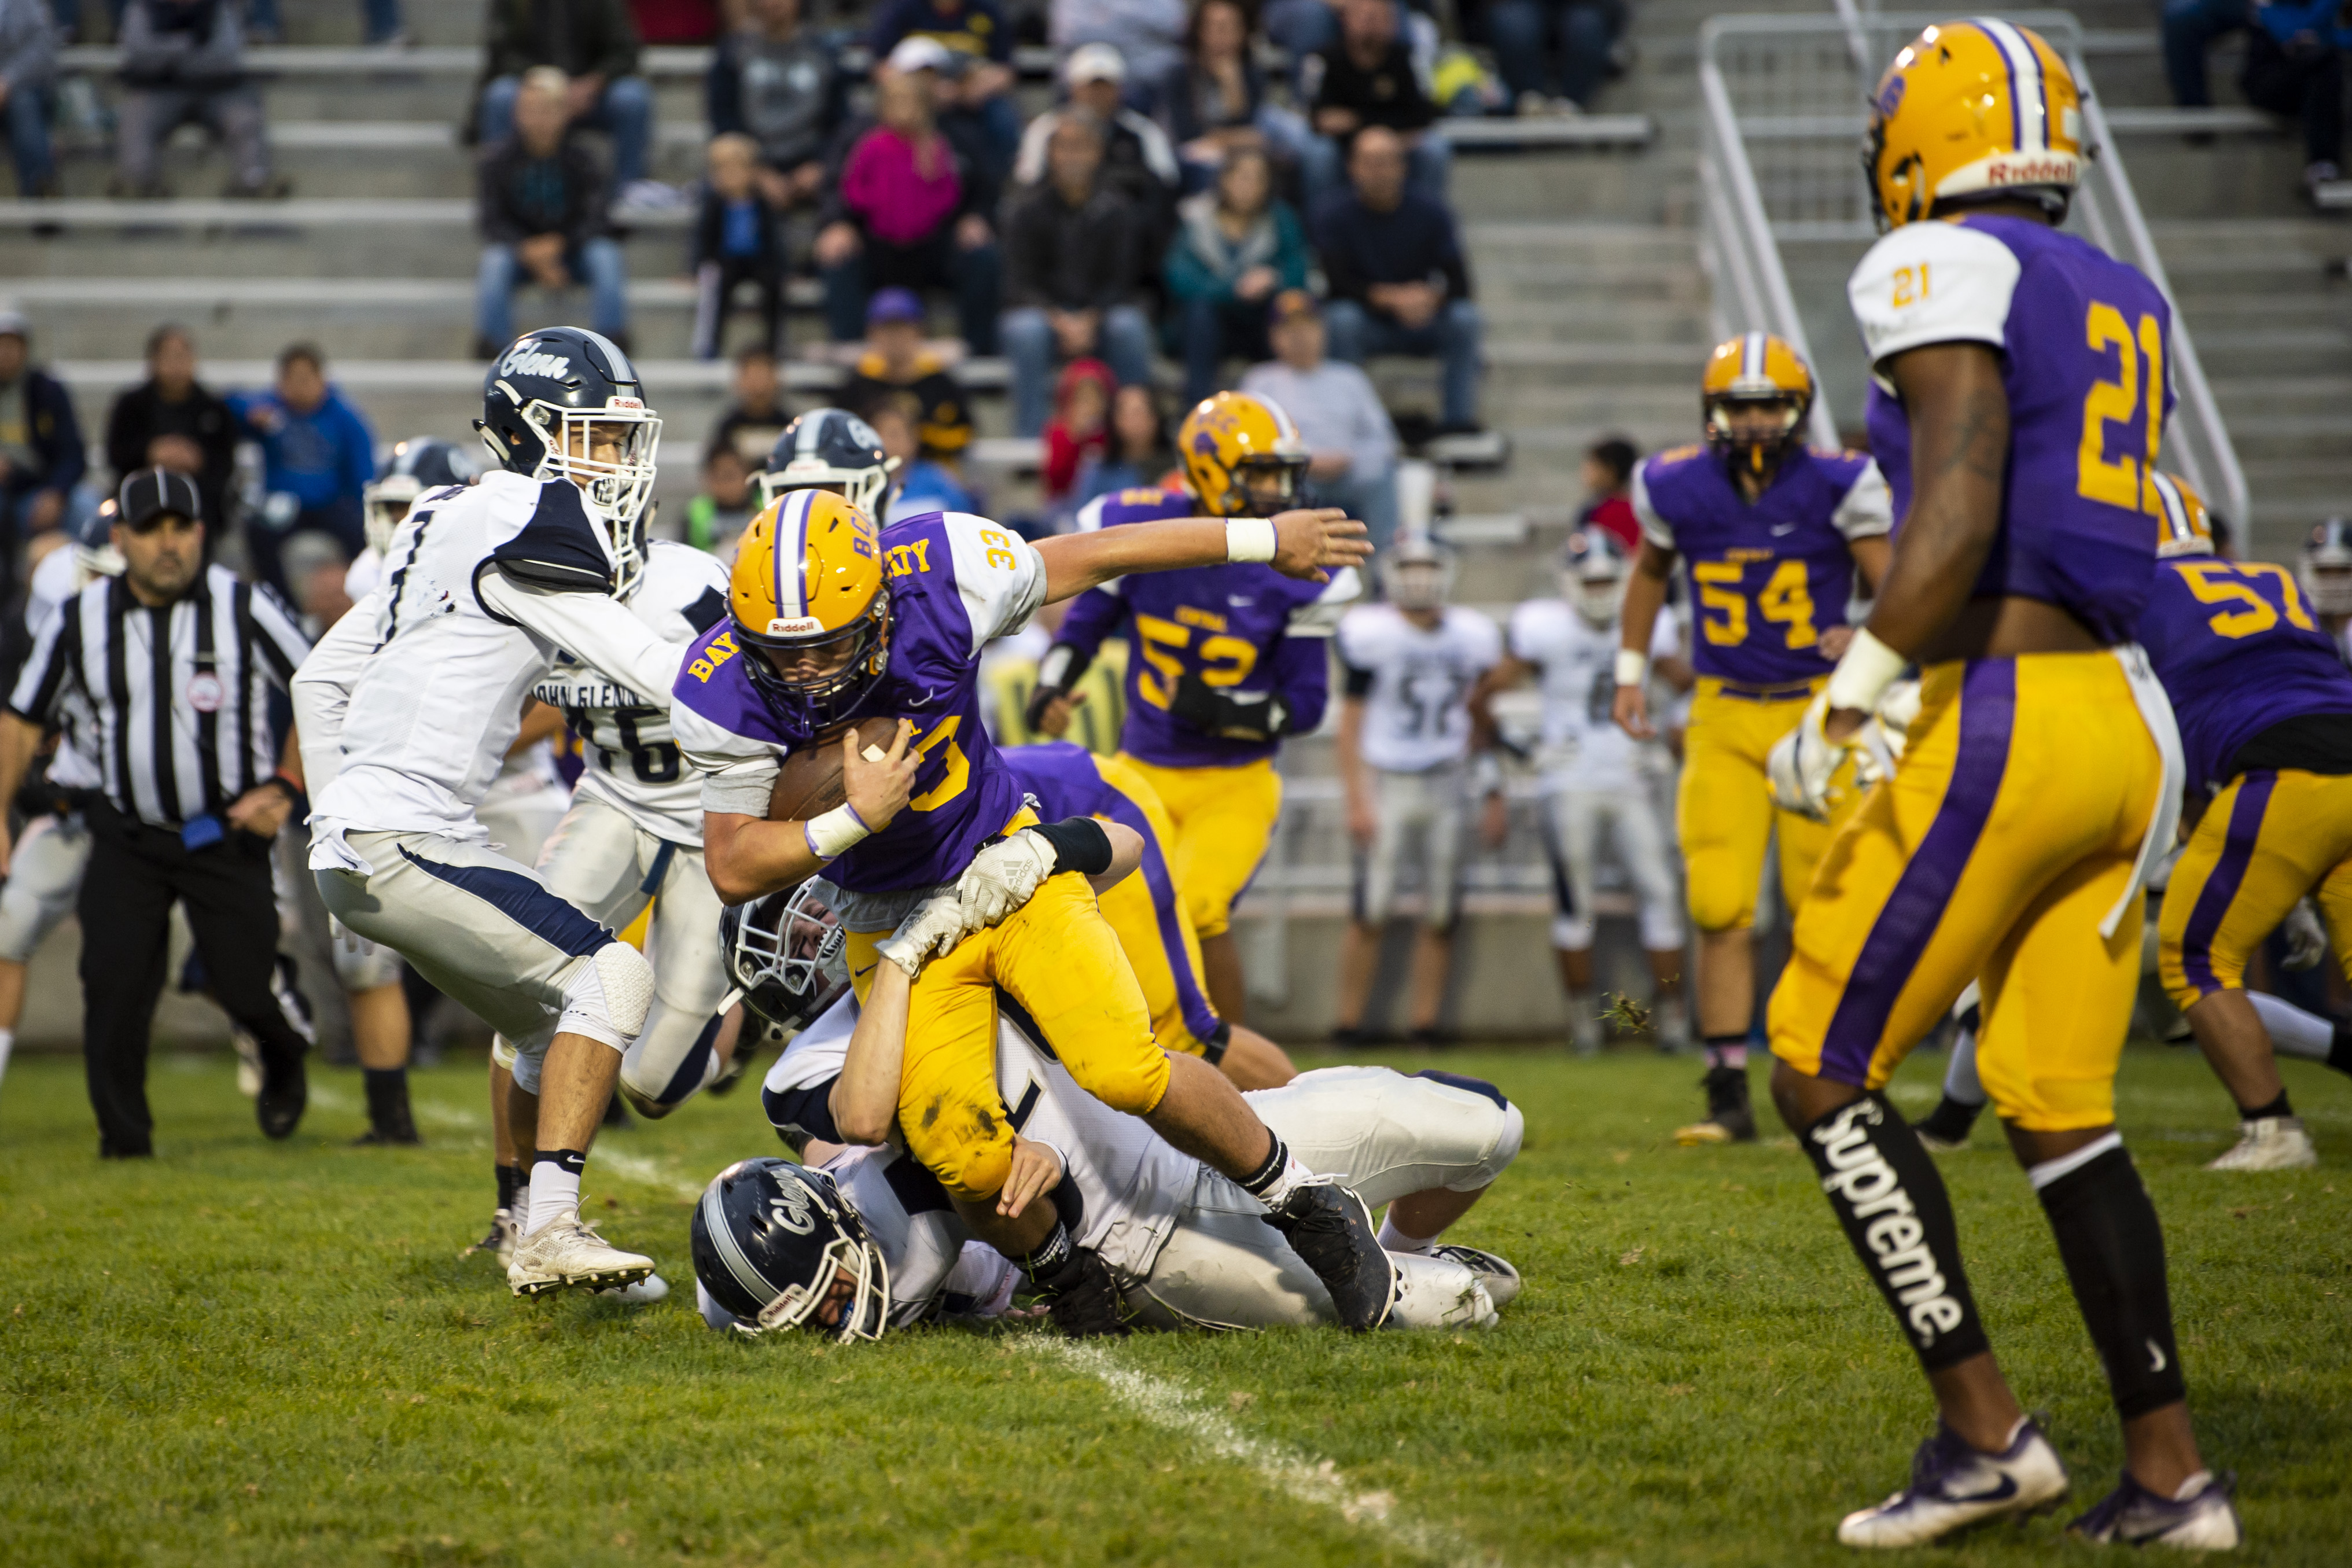 First-place clash on poll of Bay City-area's must-see Week 6 games